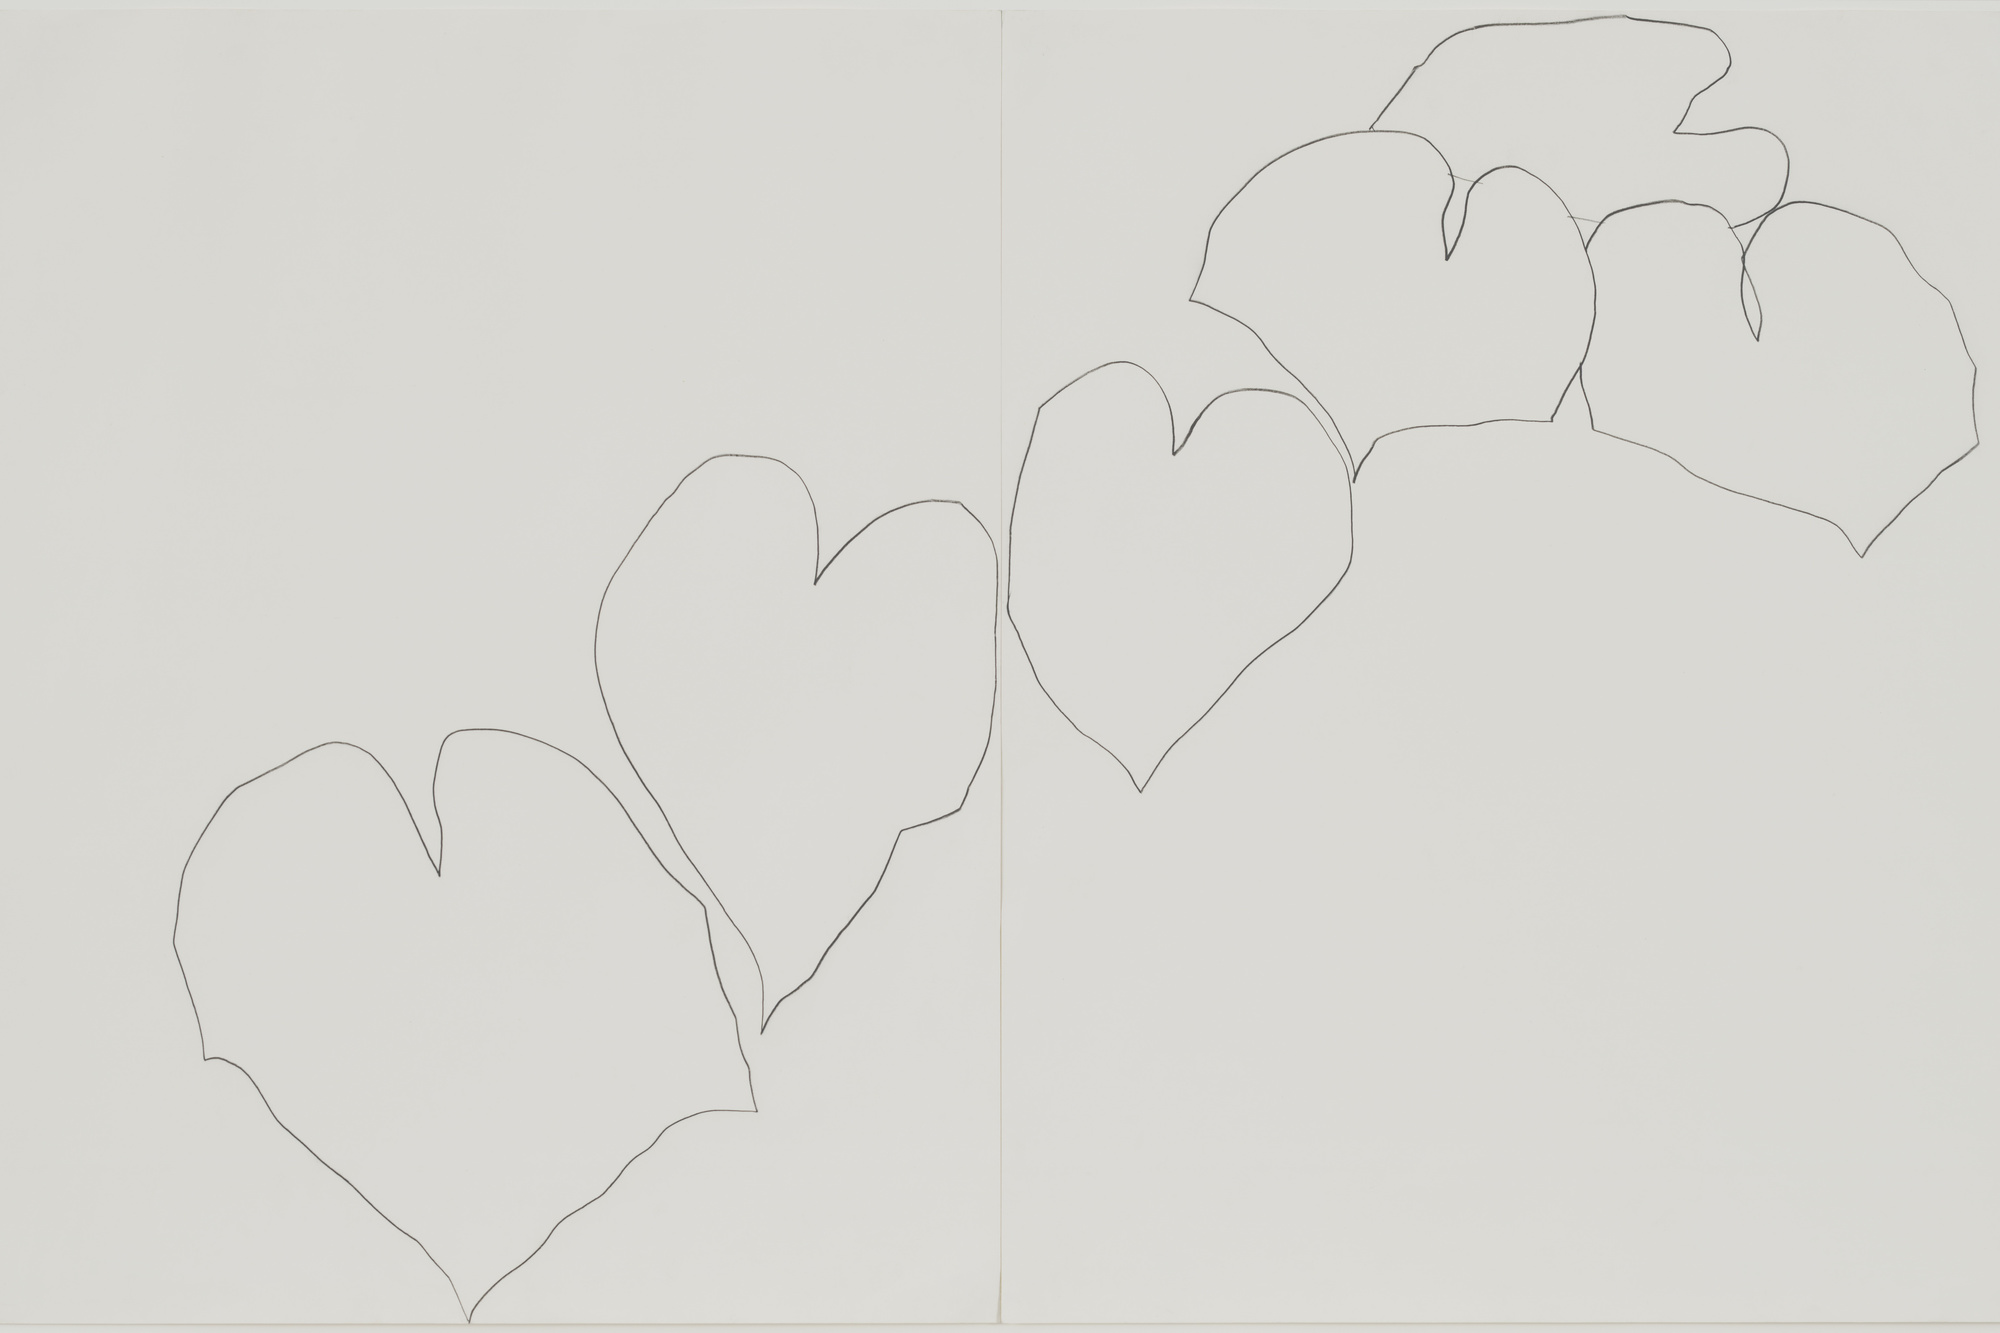 Ellsworth Kelly. Wild Grape. 1960. Pencil on two sheets of paper, overall: 28 1/2 × 25″ (72.4 × 114.3 cm). The Museum of Modern Art, New York. Gift of Kathy and Richard Fuld, Jr. in honor of Ellsworth Kelly's 80th birthday. © 2003 Ellsworth Kelly